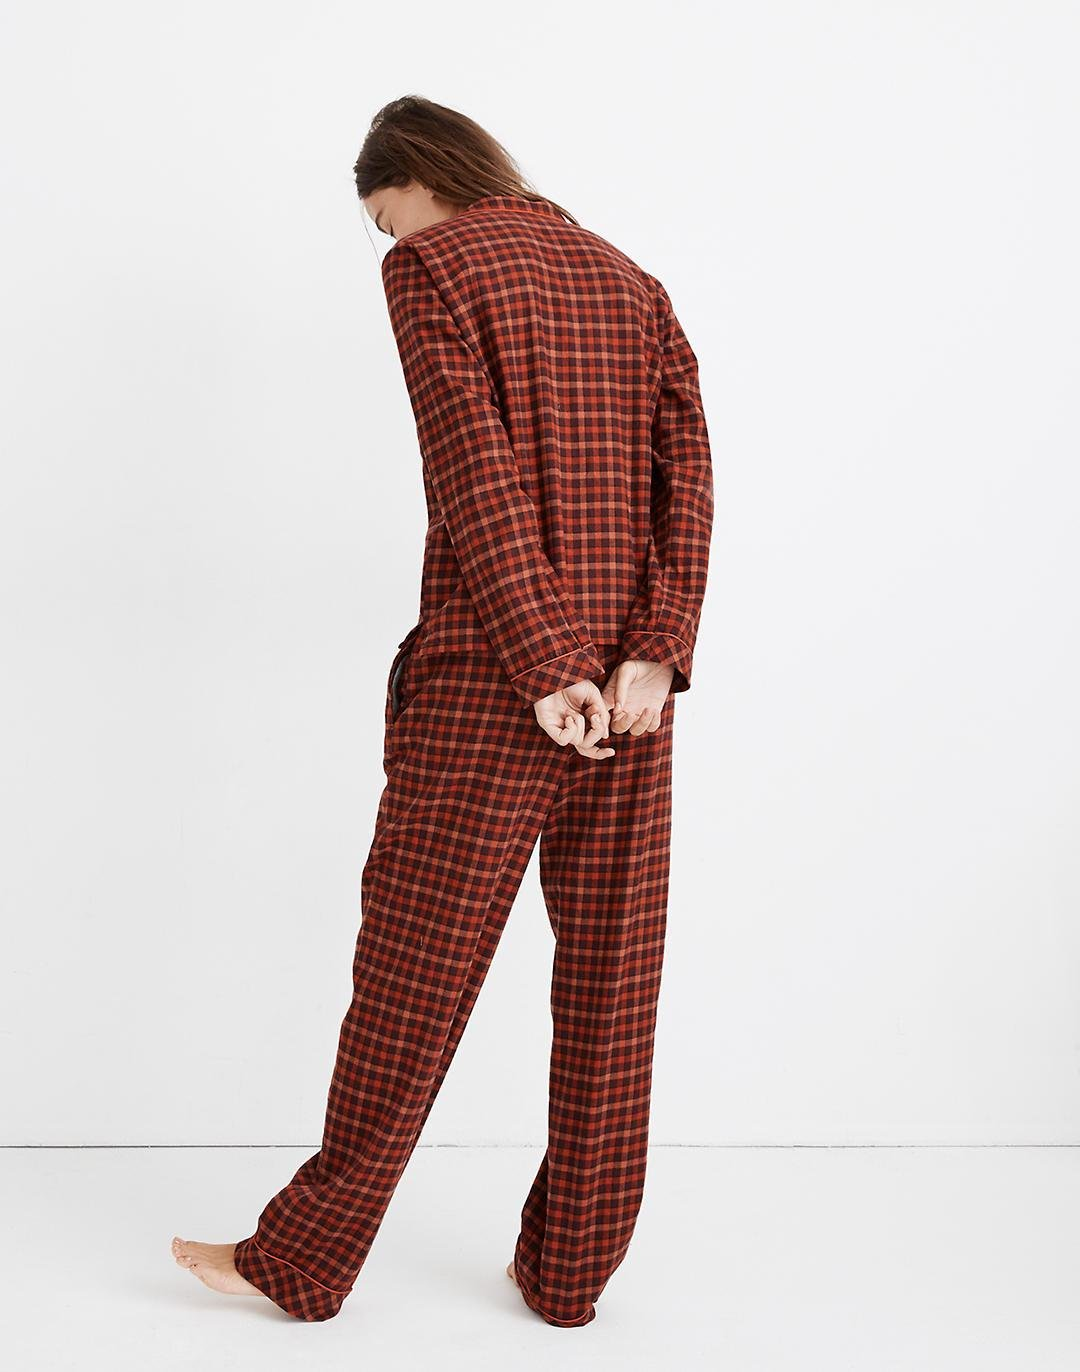 Flannel Bedtime Pajama Set in Plaid 2